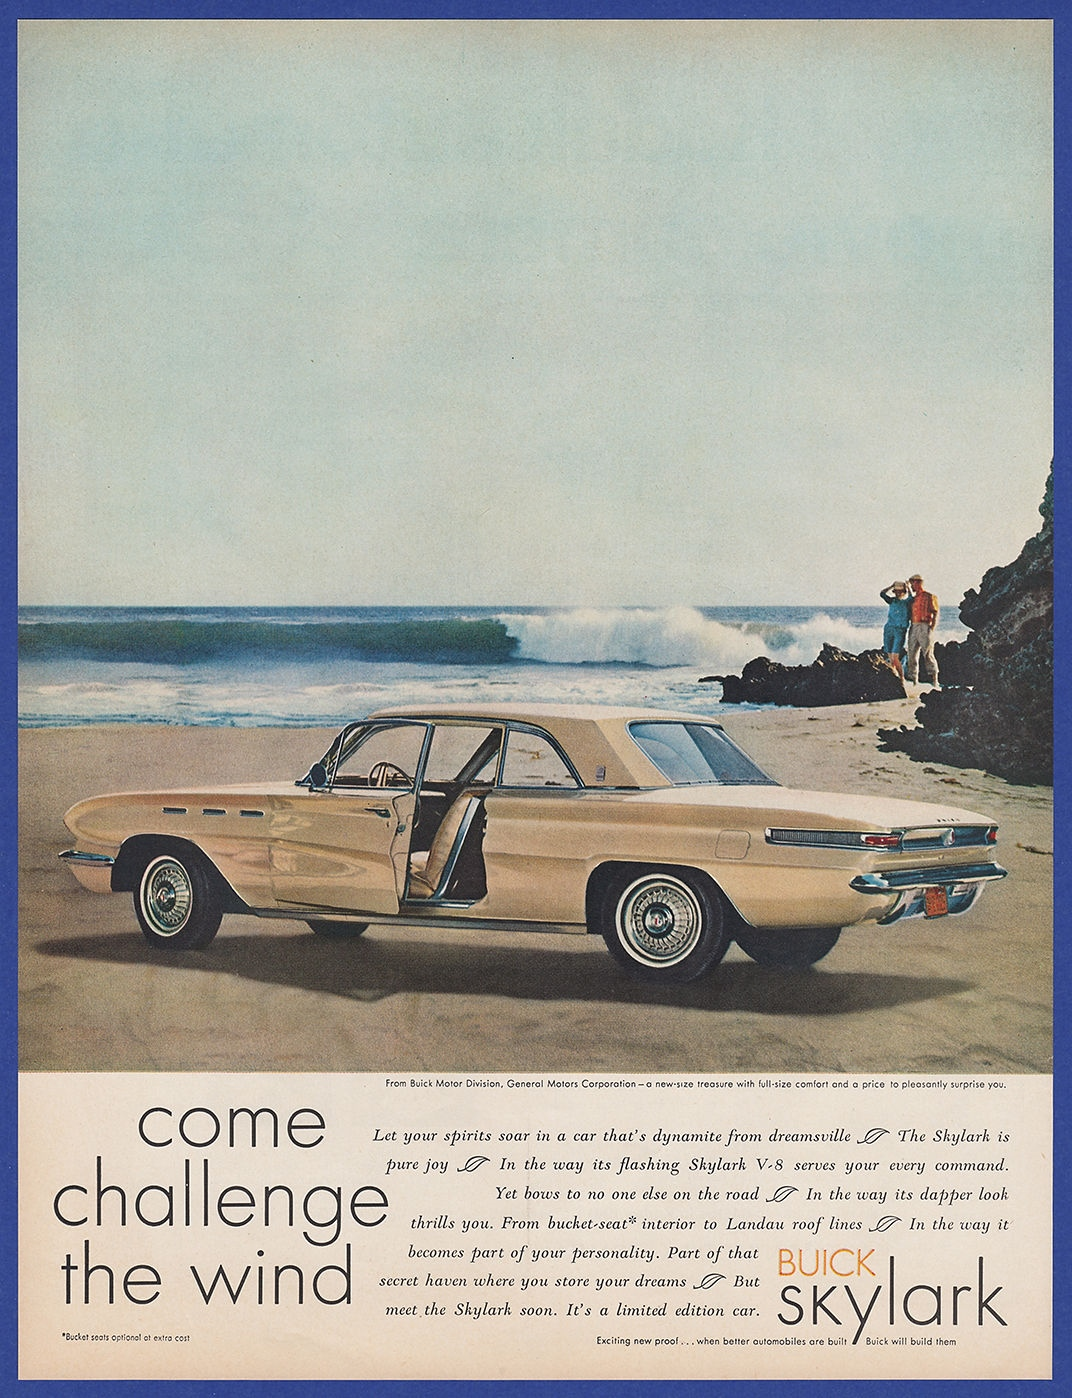 Vintage 1961 Buick Skylark 2 Door Automobile Car Print Ad 60s Ebay 1951 Convertible For Sale I Combine Shipping At No Extra Charge Add 3 Or More Ads To The Cart And Receive Free Checkout